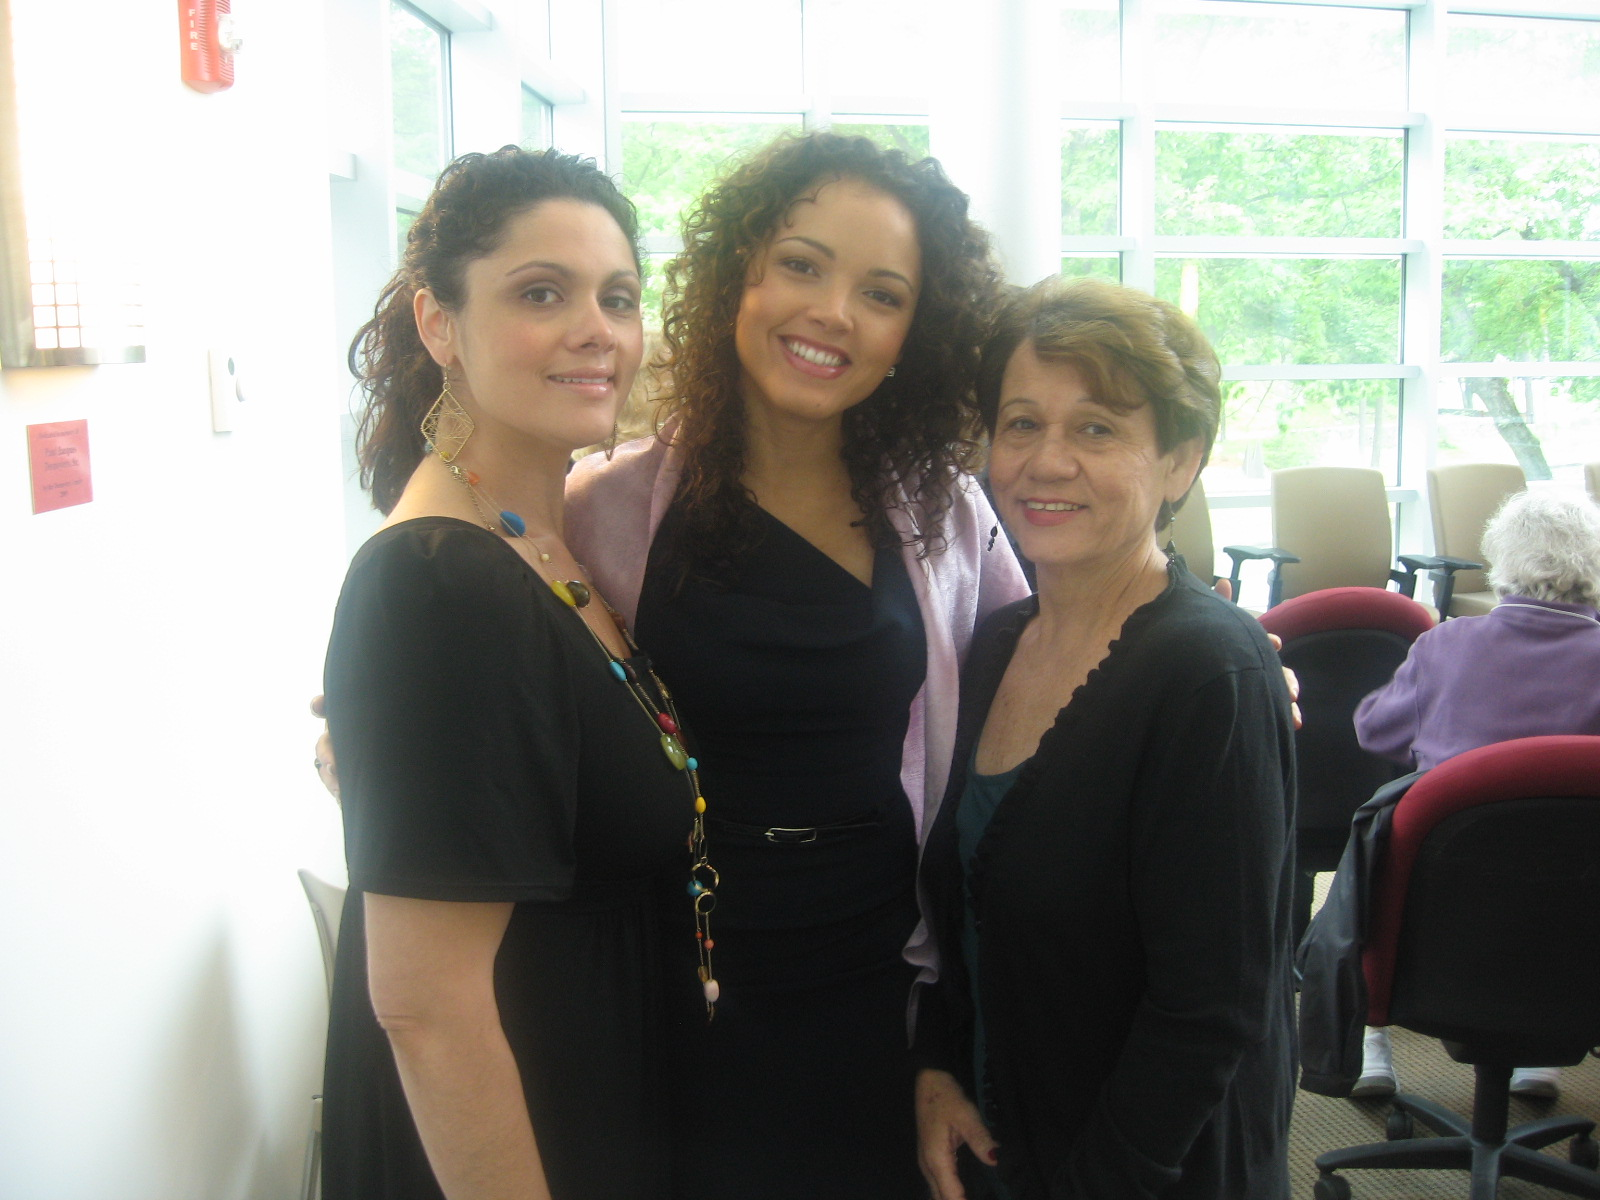 - My big sister, Marisele, mom, and I during a speaking engagement at my alma matter, Endicott College in Beverly, MA.